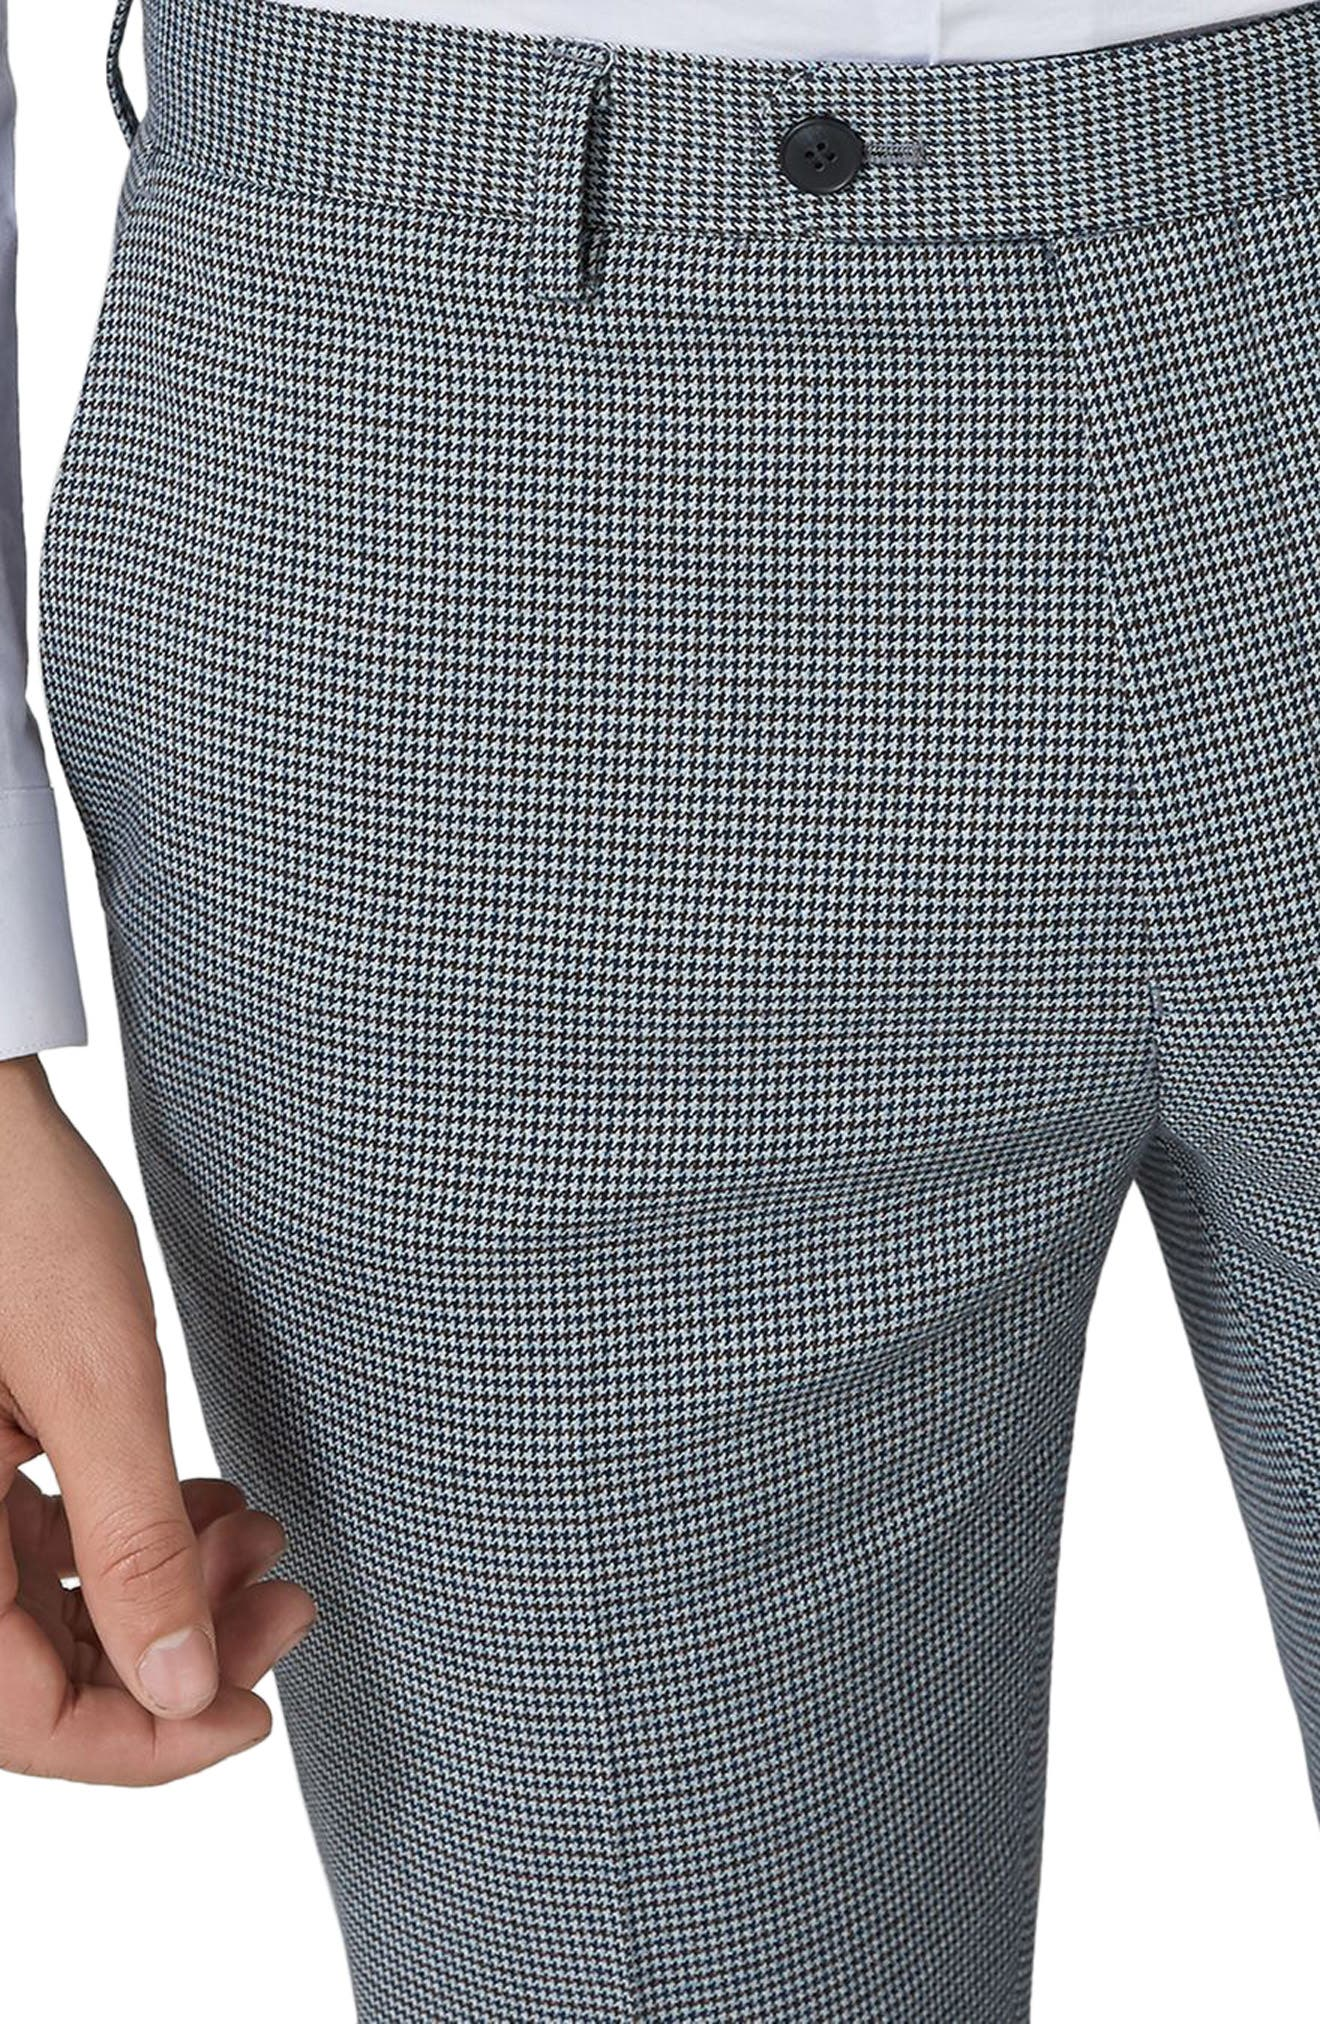 Skinny Fit Houndstooth Suit Trousers,                             Alternate thumbnail 4, color,                             Green Multi